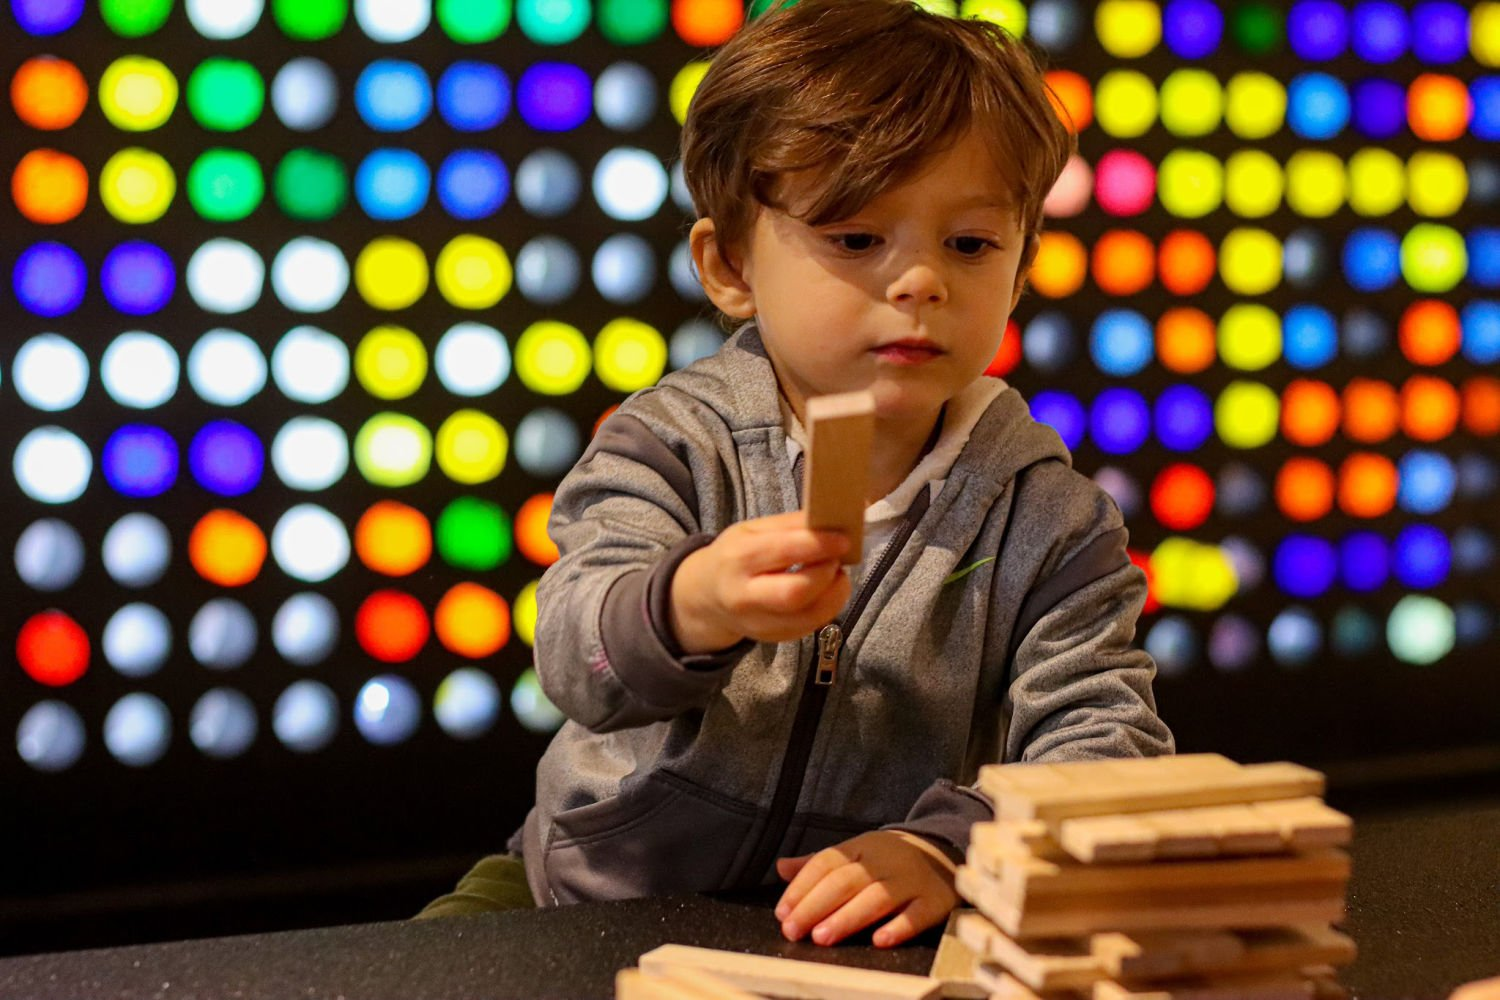 Toddler Playing with Blocks in Boise Discovery Center